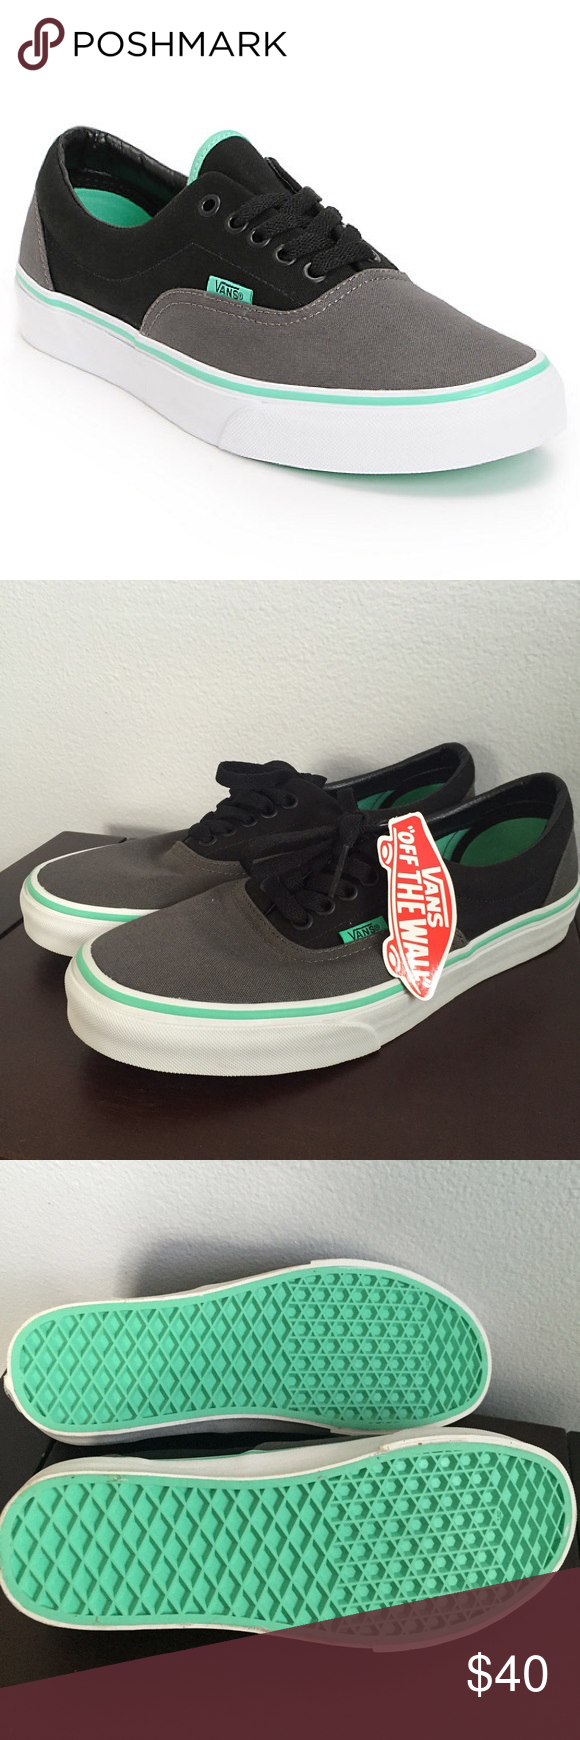 buy popular 49d85 d1dff NWT Vans Era Grey, Black,   Mint Green Skate Shoes Brand new Vans still in  the box, perfect for gift giving this Christmas. Unisex. Size 7 Men s and  8.5 ...